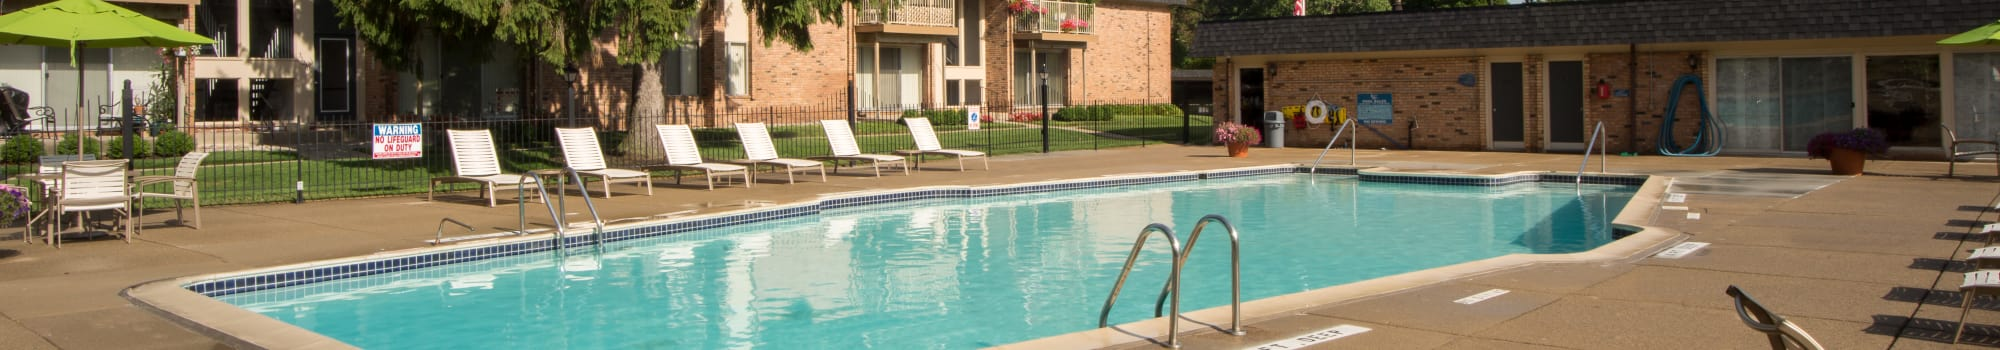 Privacy policy at Kensington Manor Apartments in Farmington, Michigan